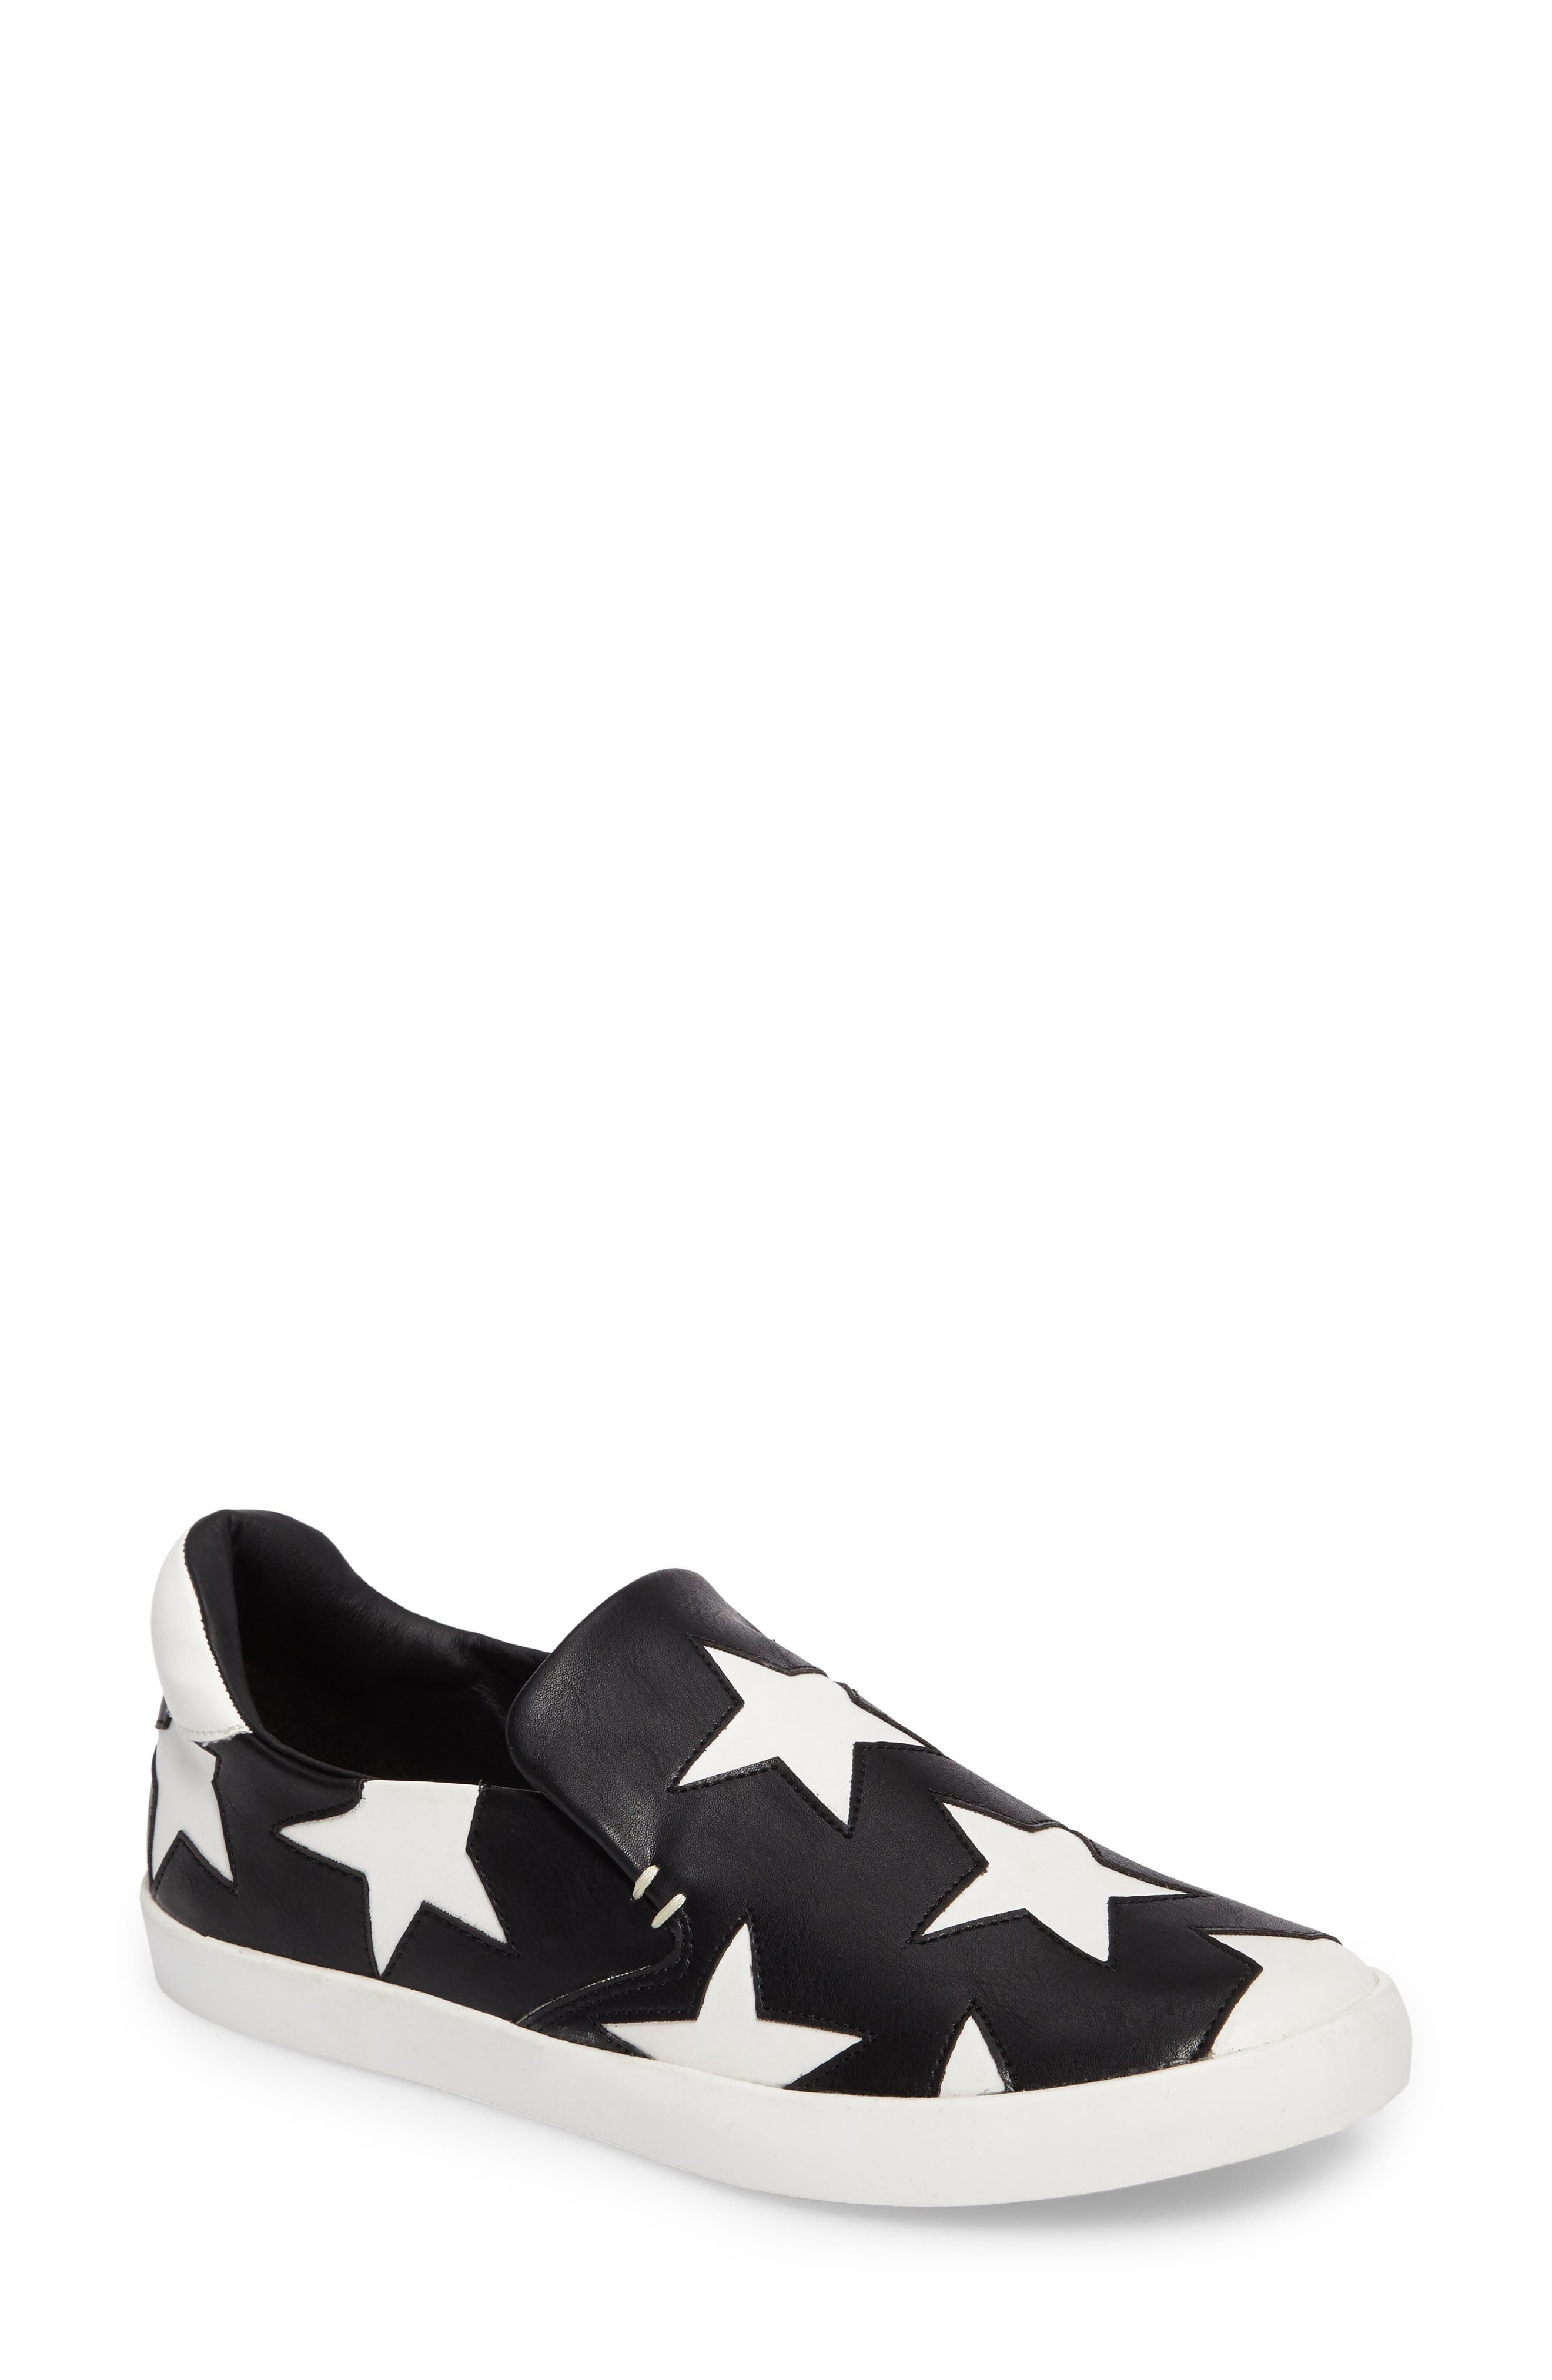 Alternate Image 1 Selected - Coconuts by Matisse Highlight Slip-On Star Sneaker (Women)